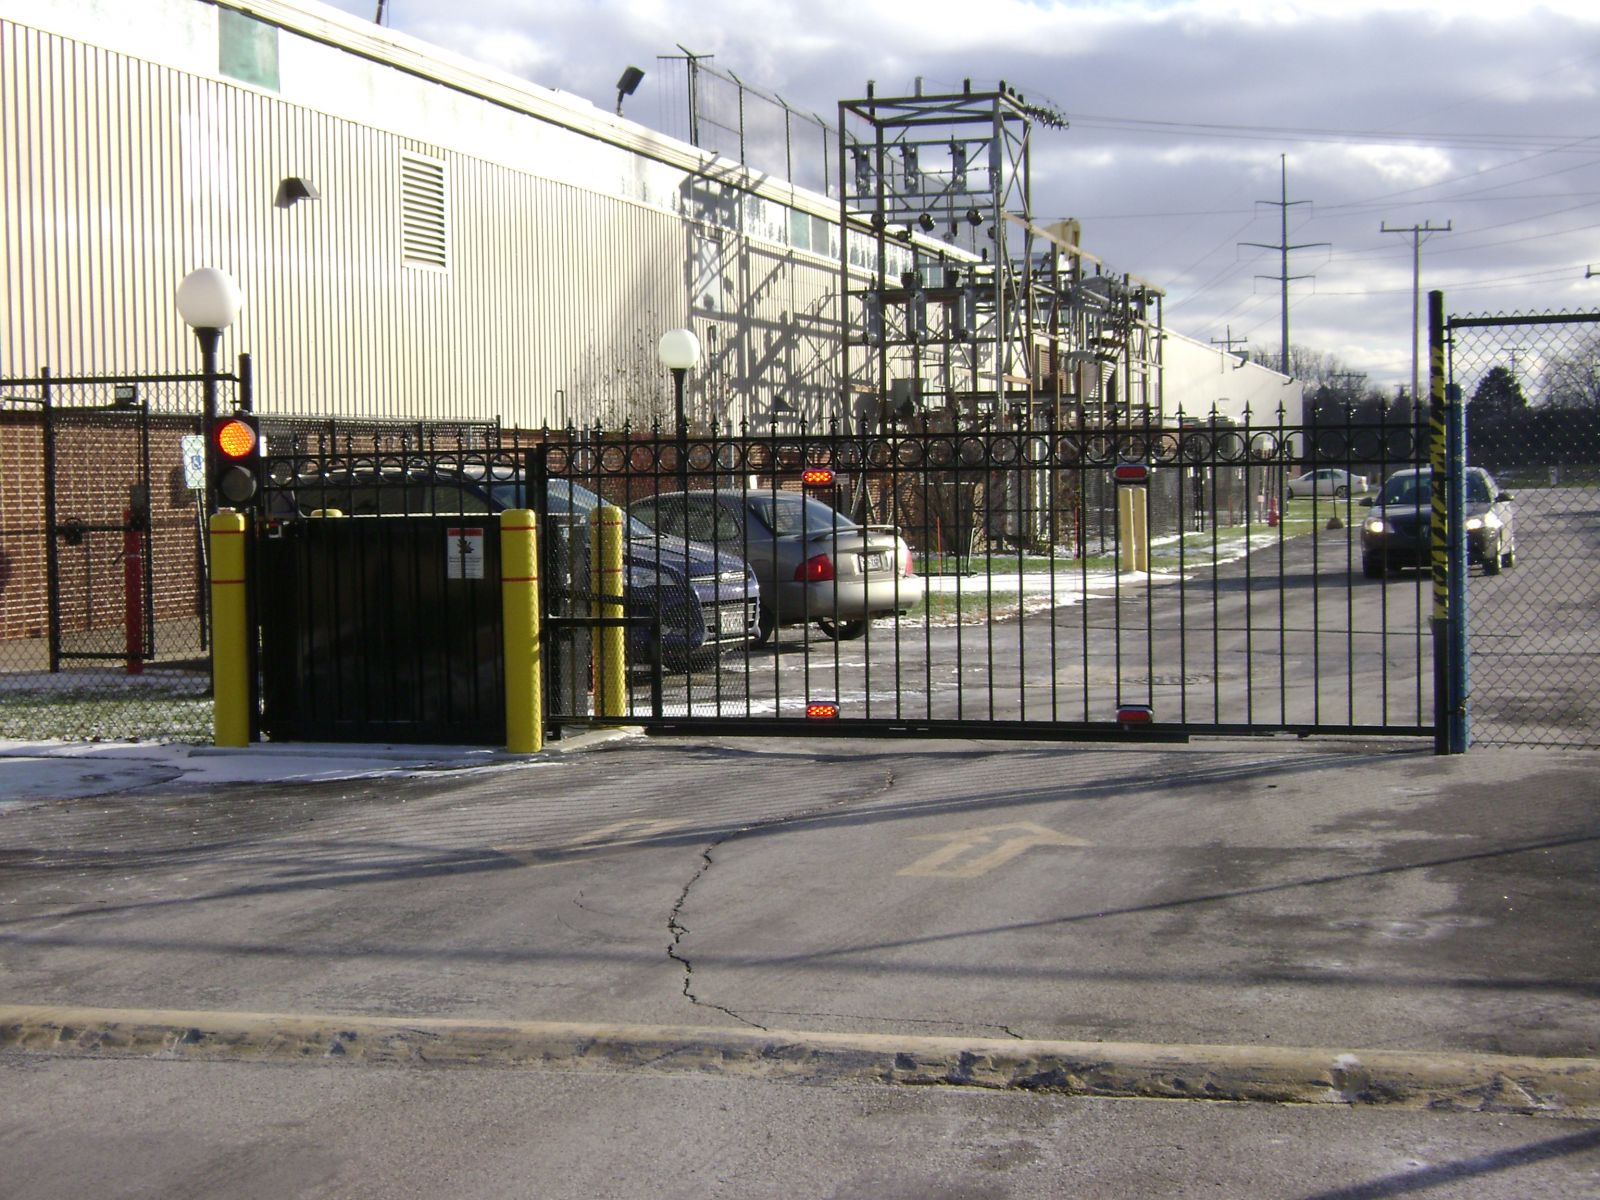 Garage Styles Pedestrian Amp Parking Lot Security Gates Milwaukee Wi